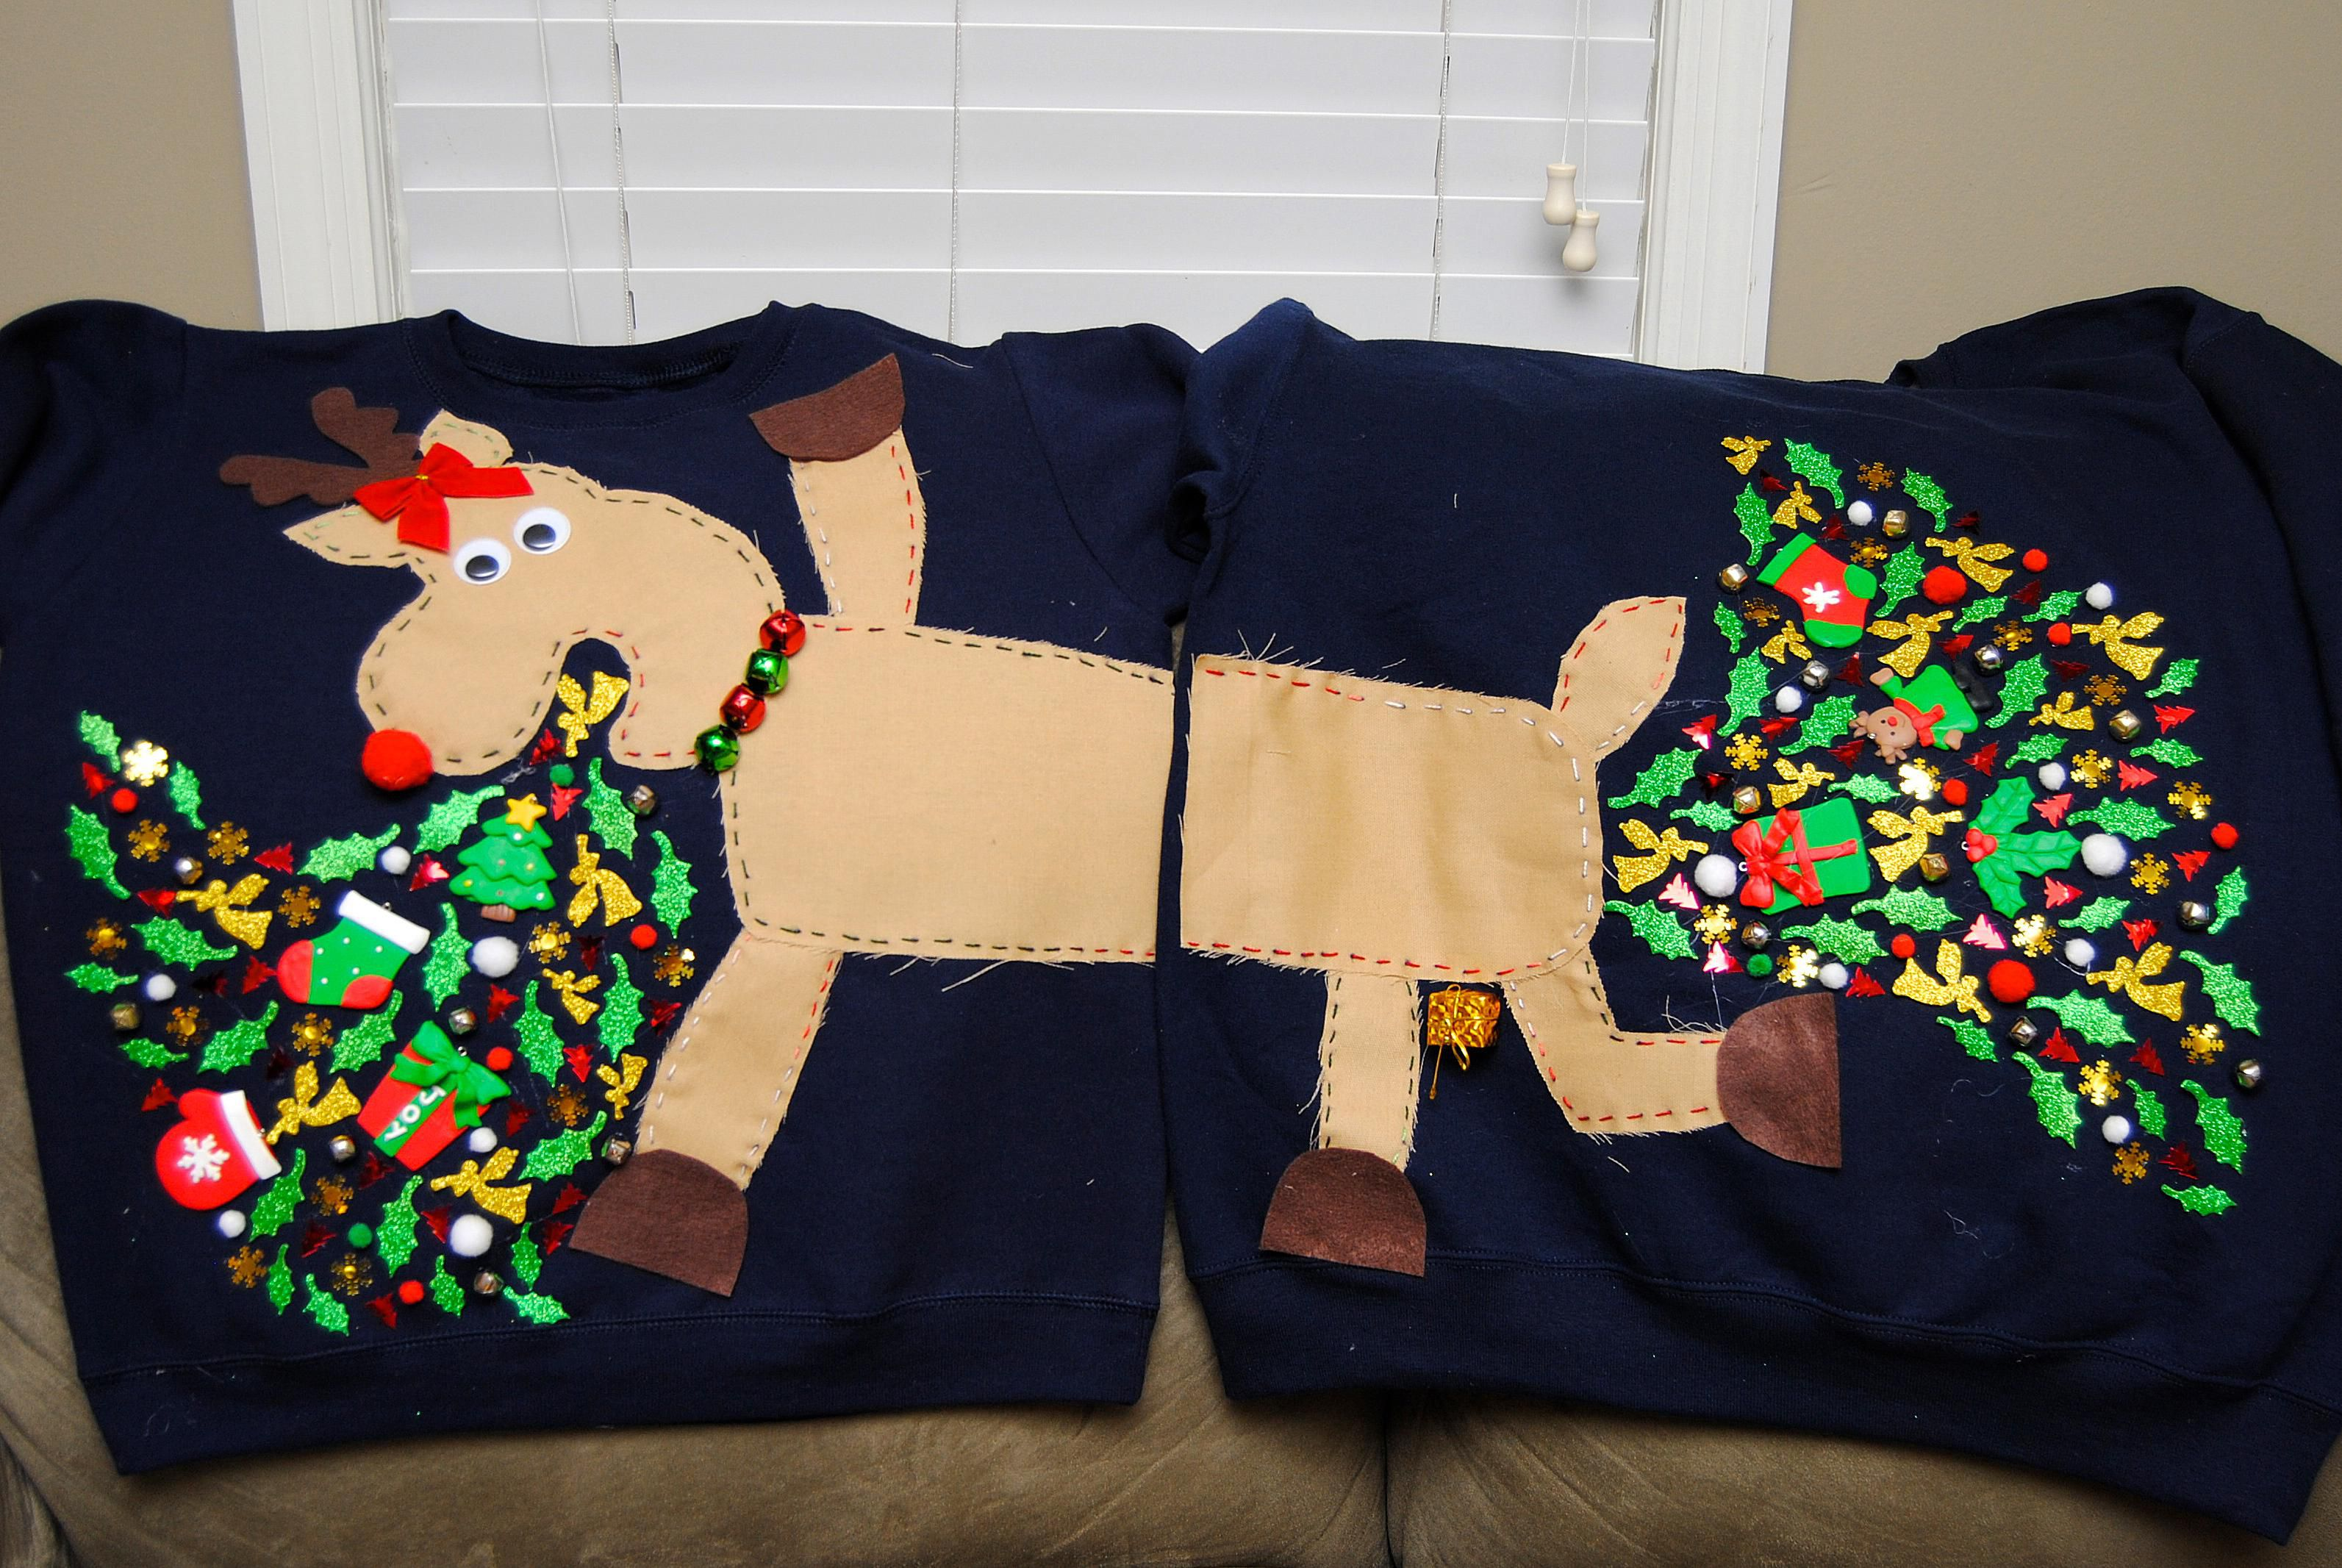 20 of the funniest ugly christmas sweaters ever made - Unique Ugly Christmas Sweaters